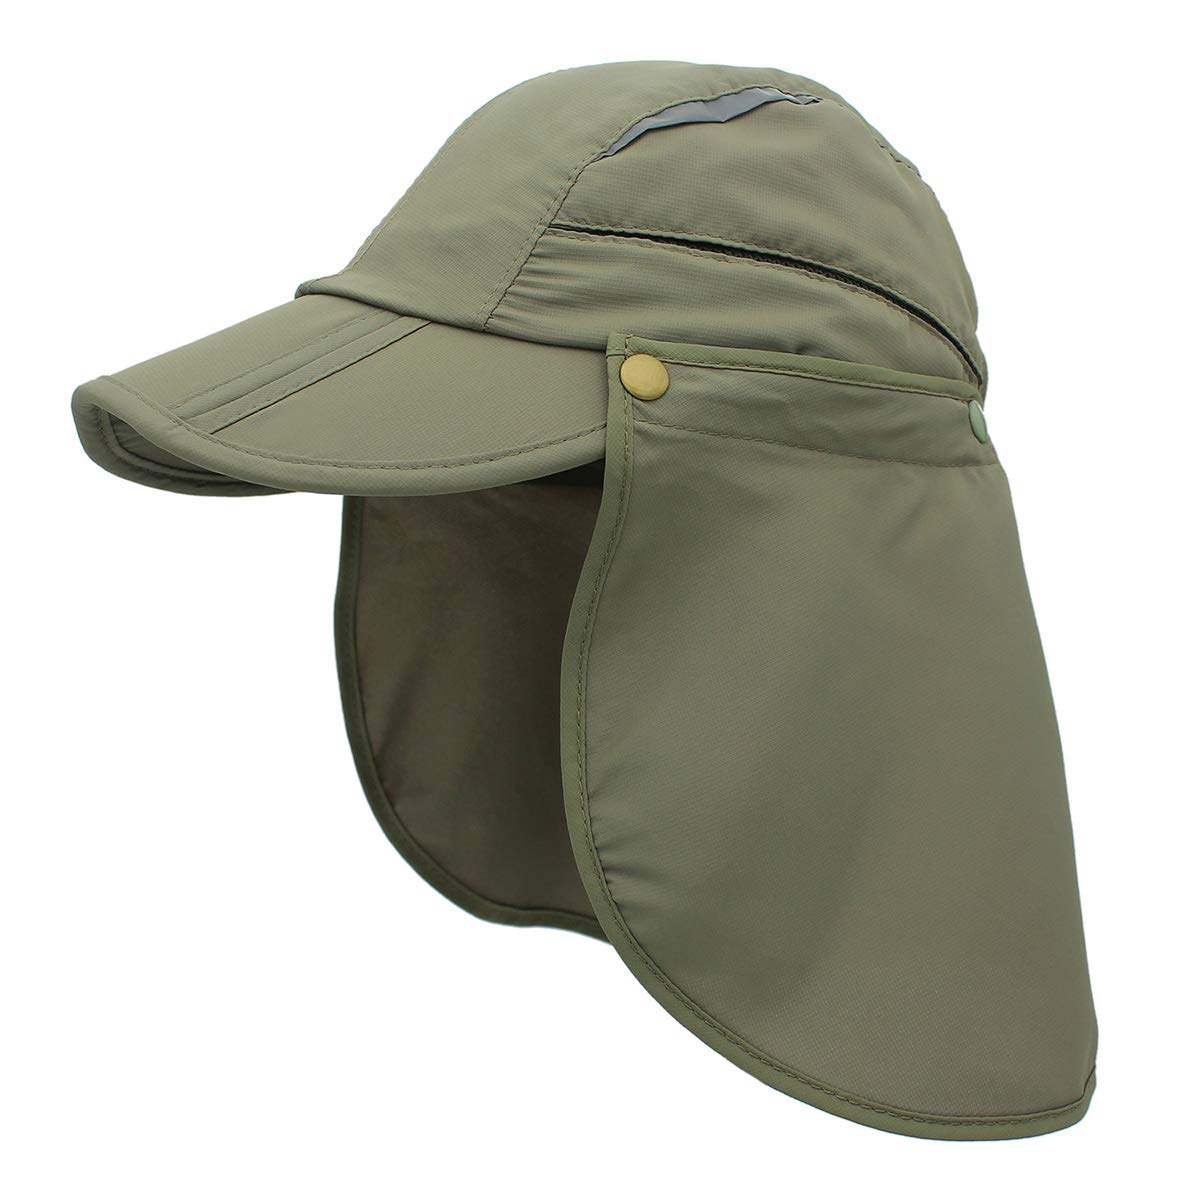 OUTFLY Unisex Outdoor Fishing Hat Polyester UPF 50 Sun Protection Cap